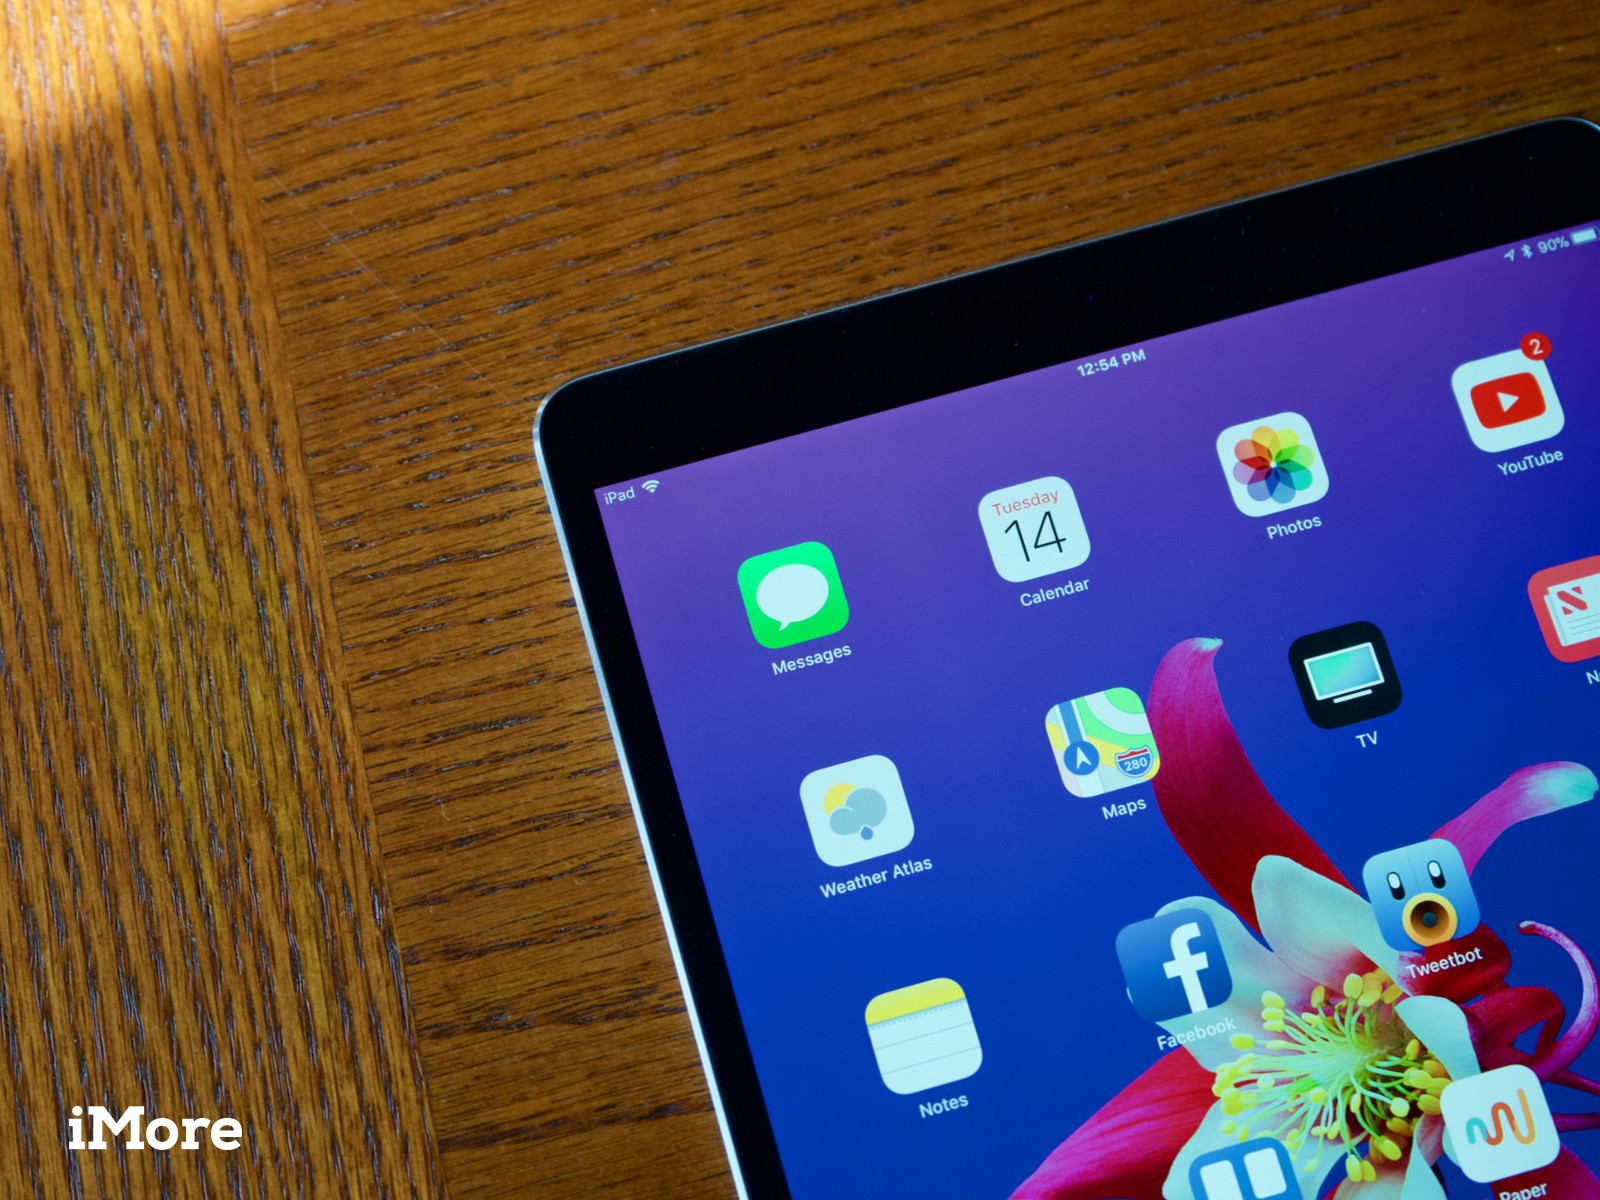 How to keep personal messages from showing up on a shared iPad